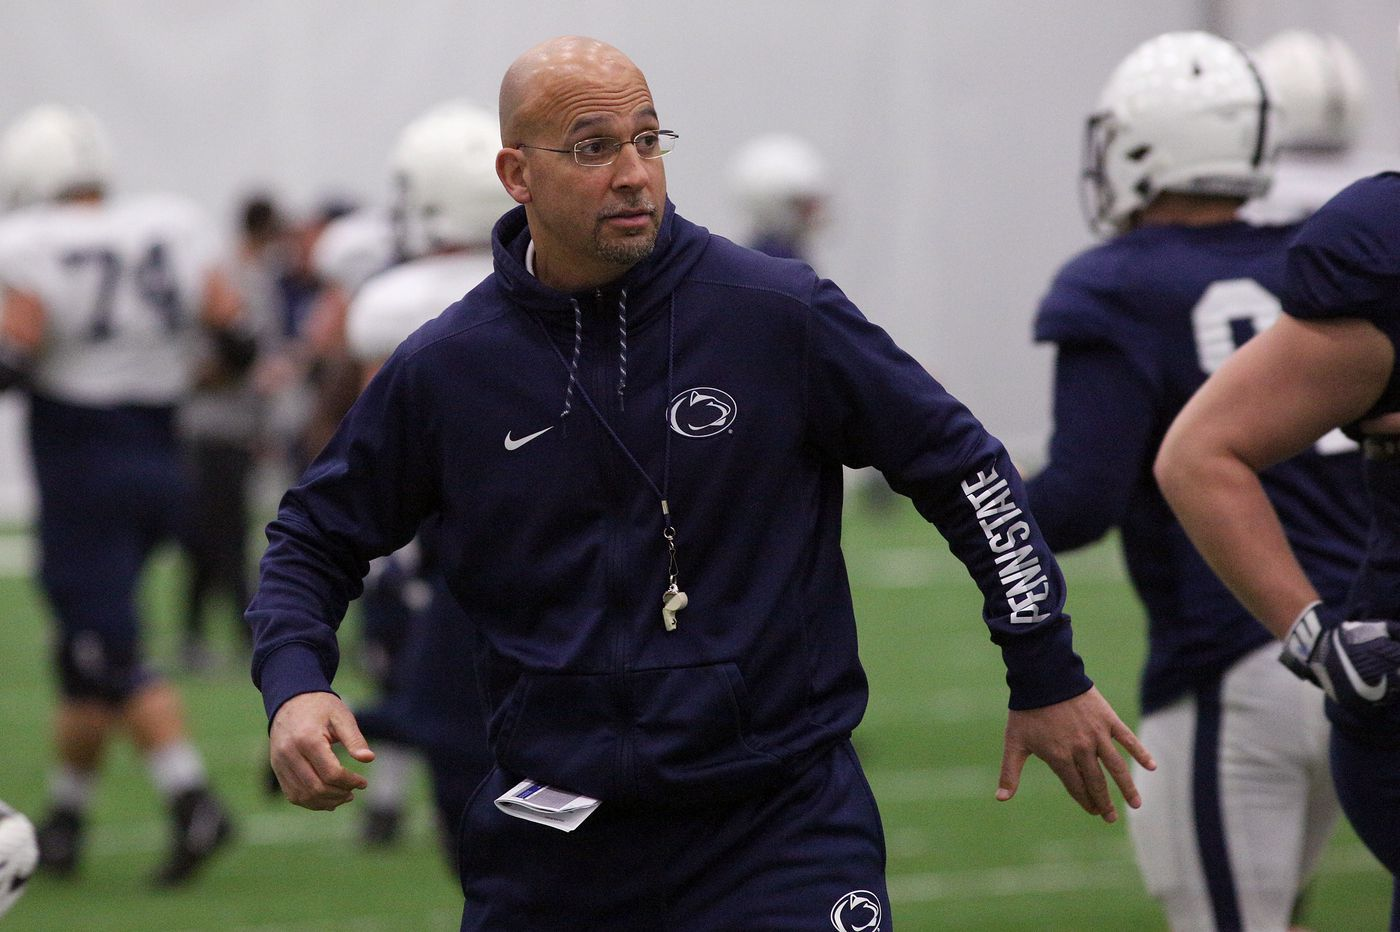 Penn State hires former Purdue All-America Taylor Stubblefield as wide receivers coach